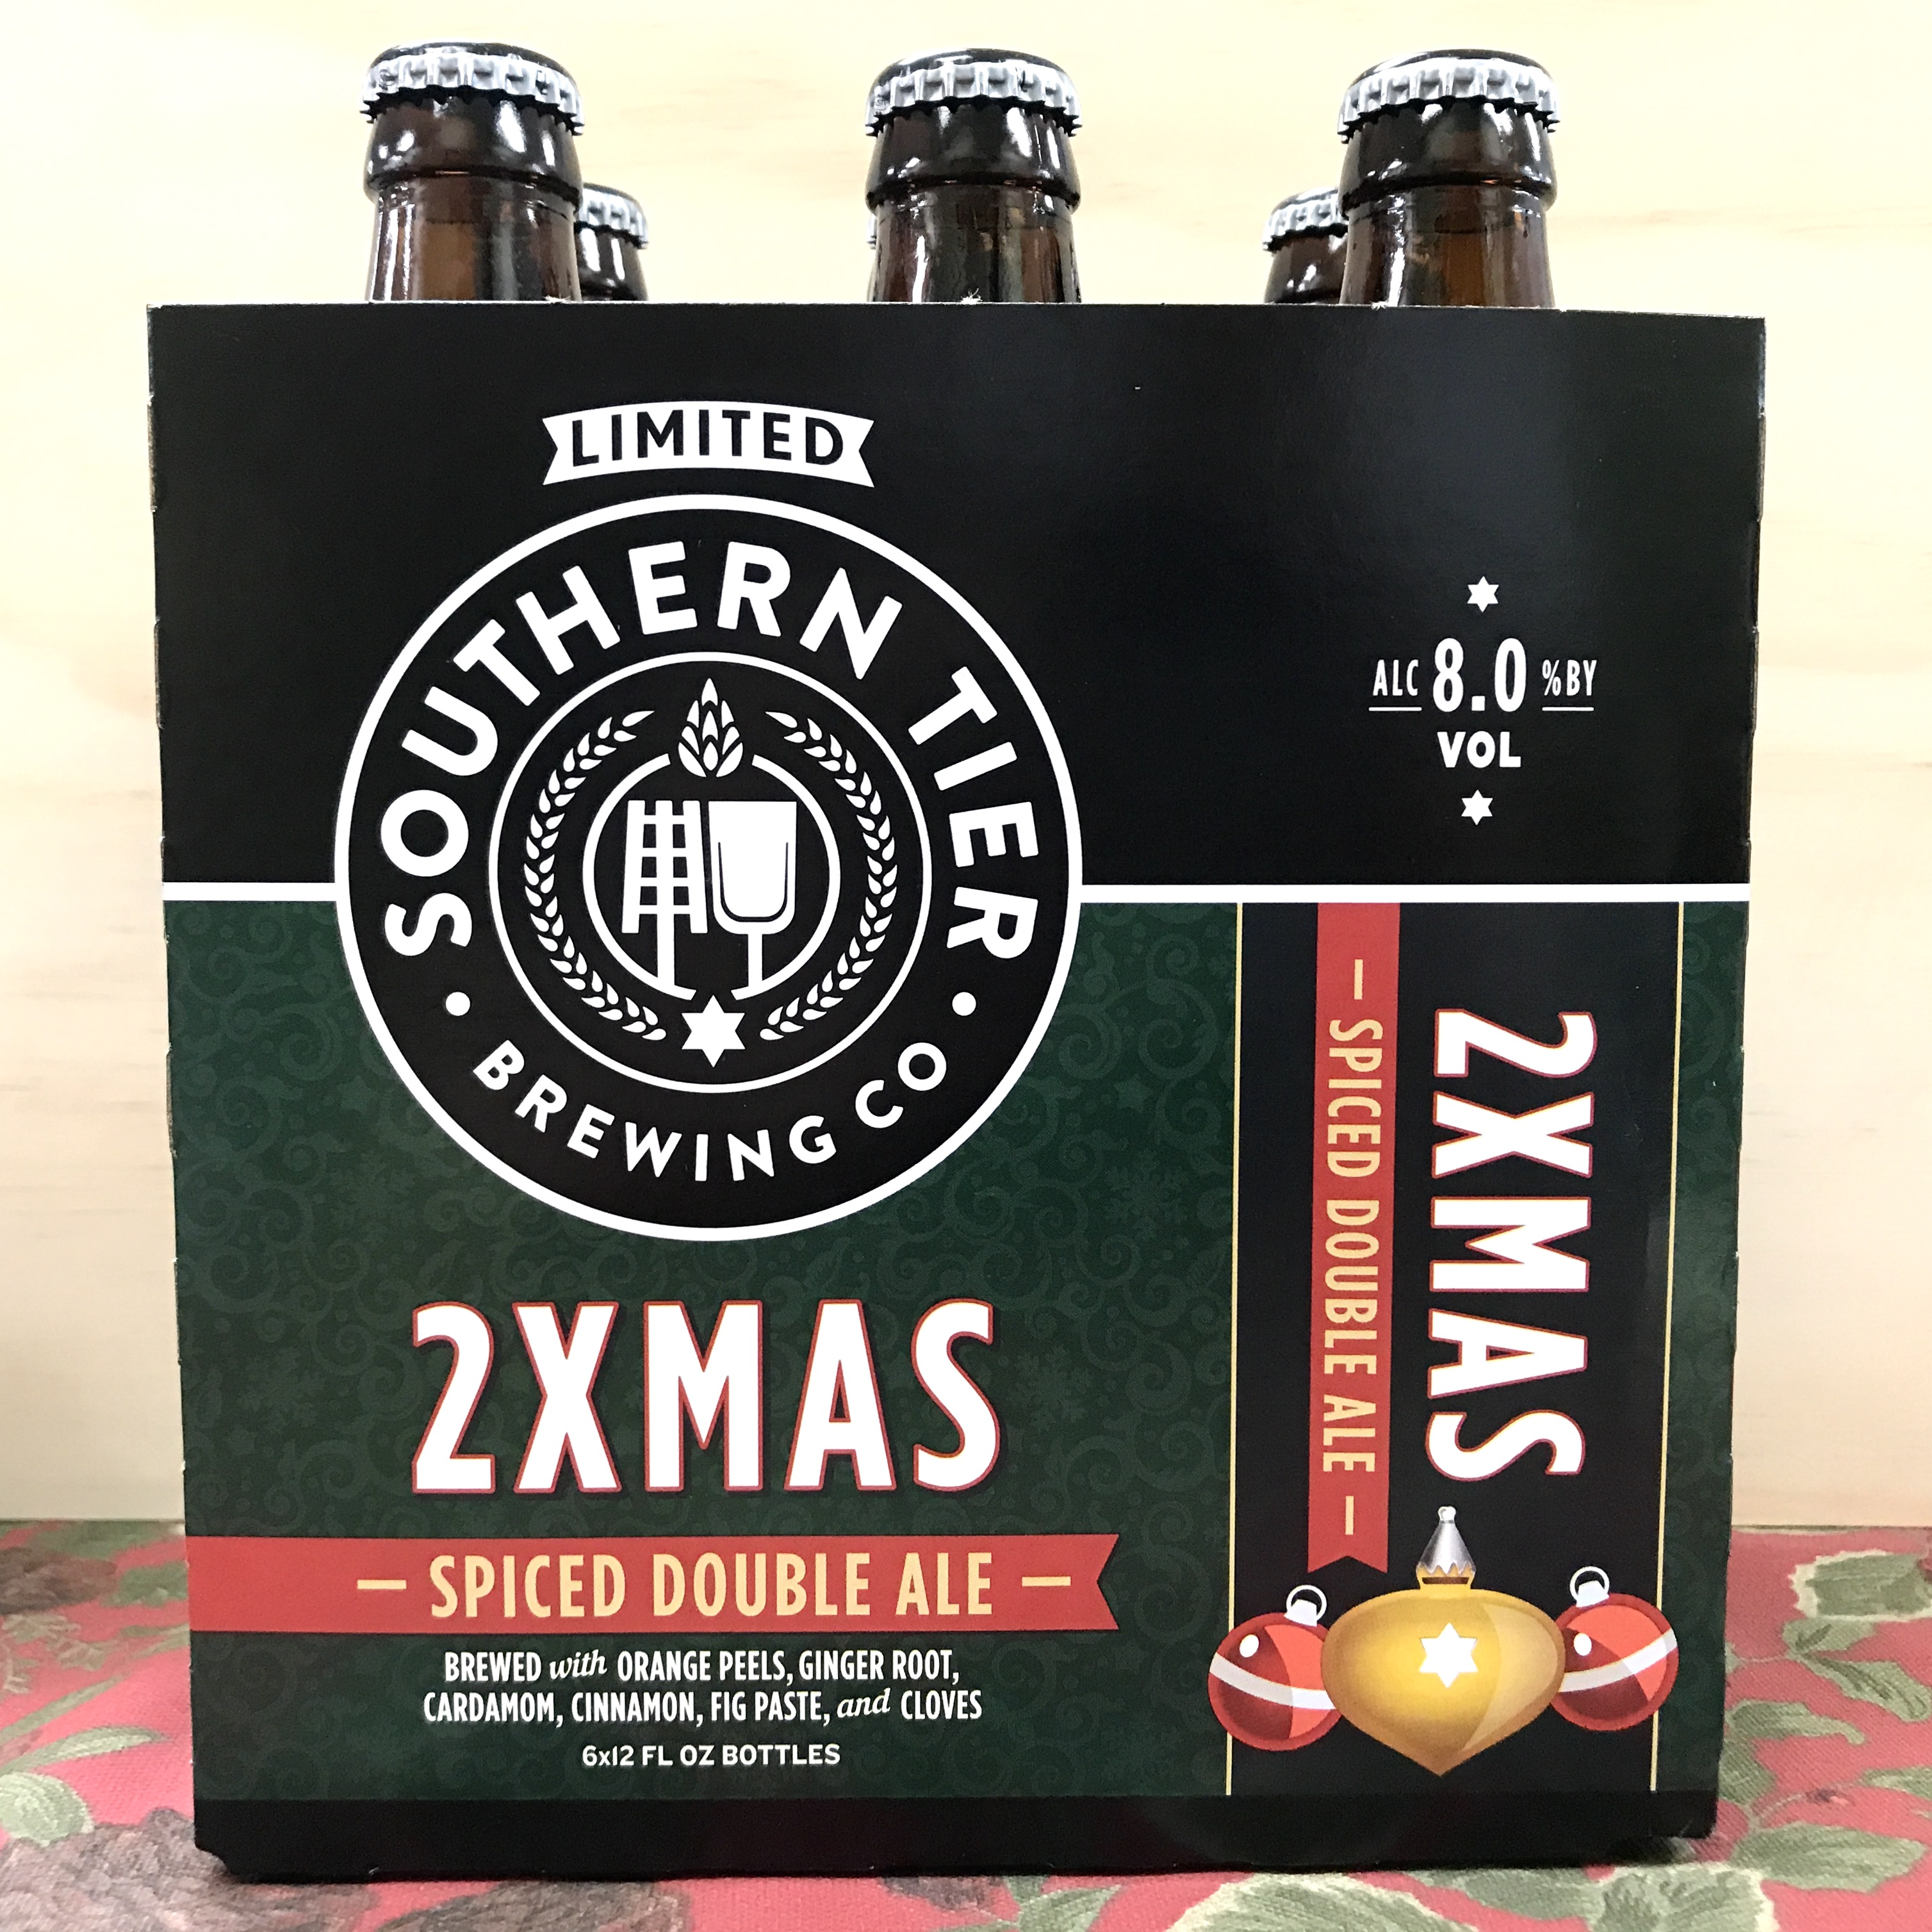 Southern Tier 2 Xmas Spiced Double Ale 6 x 12 oz